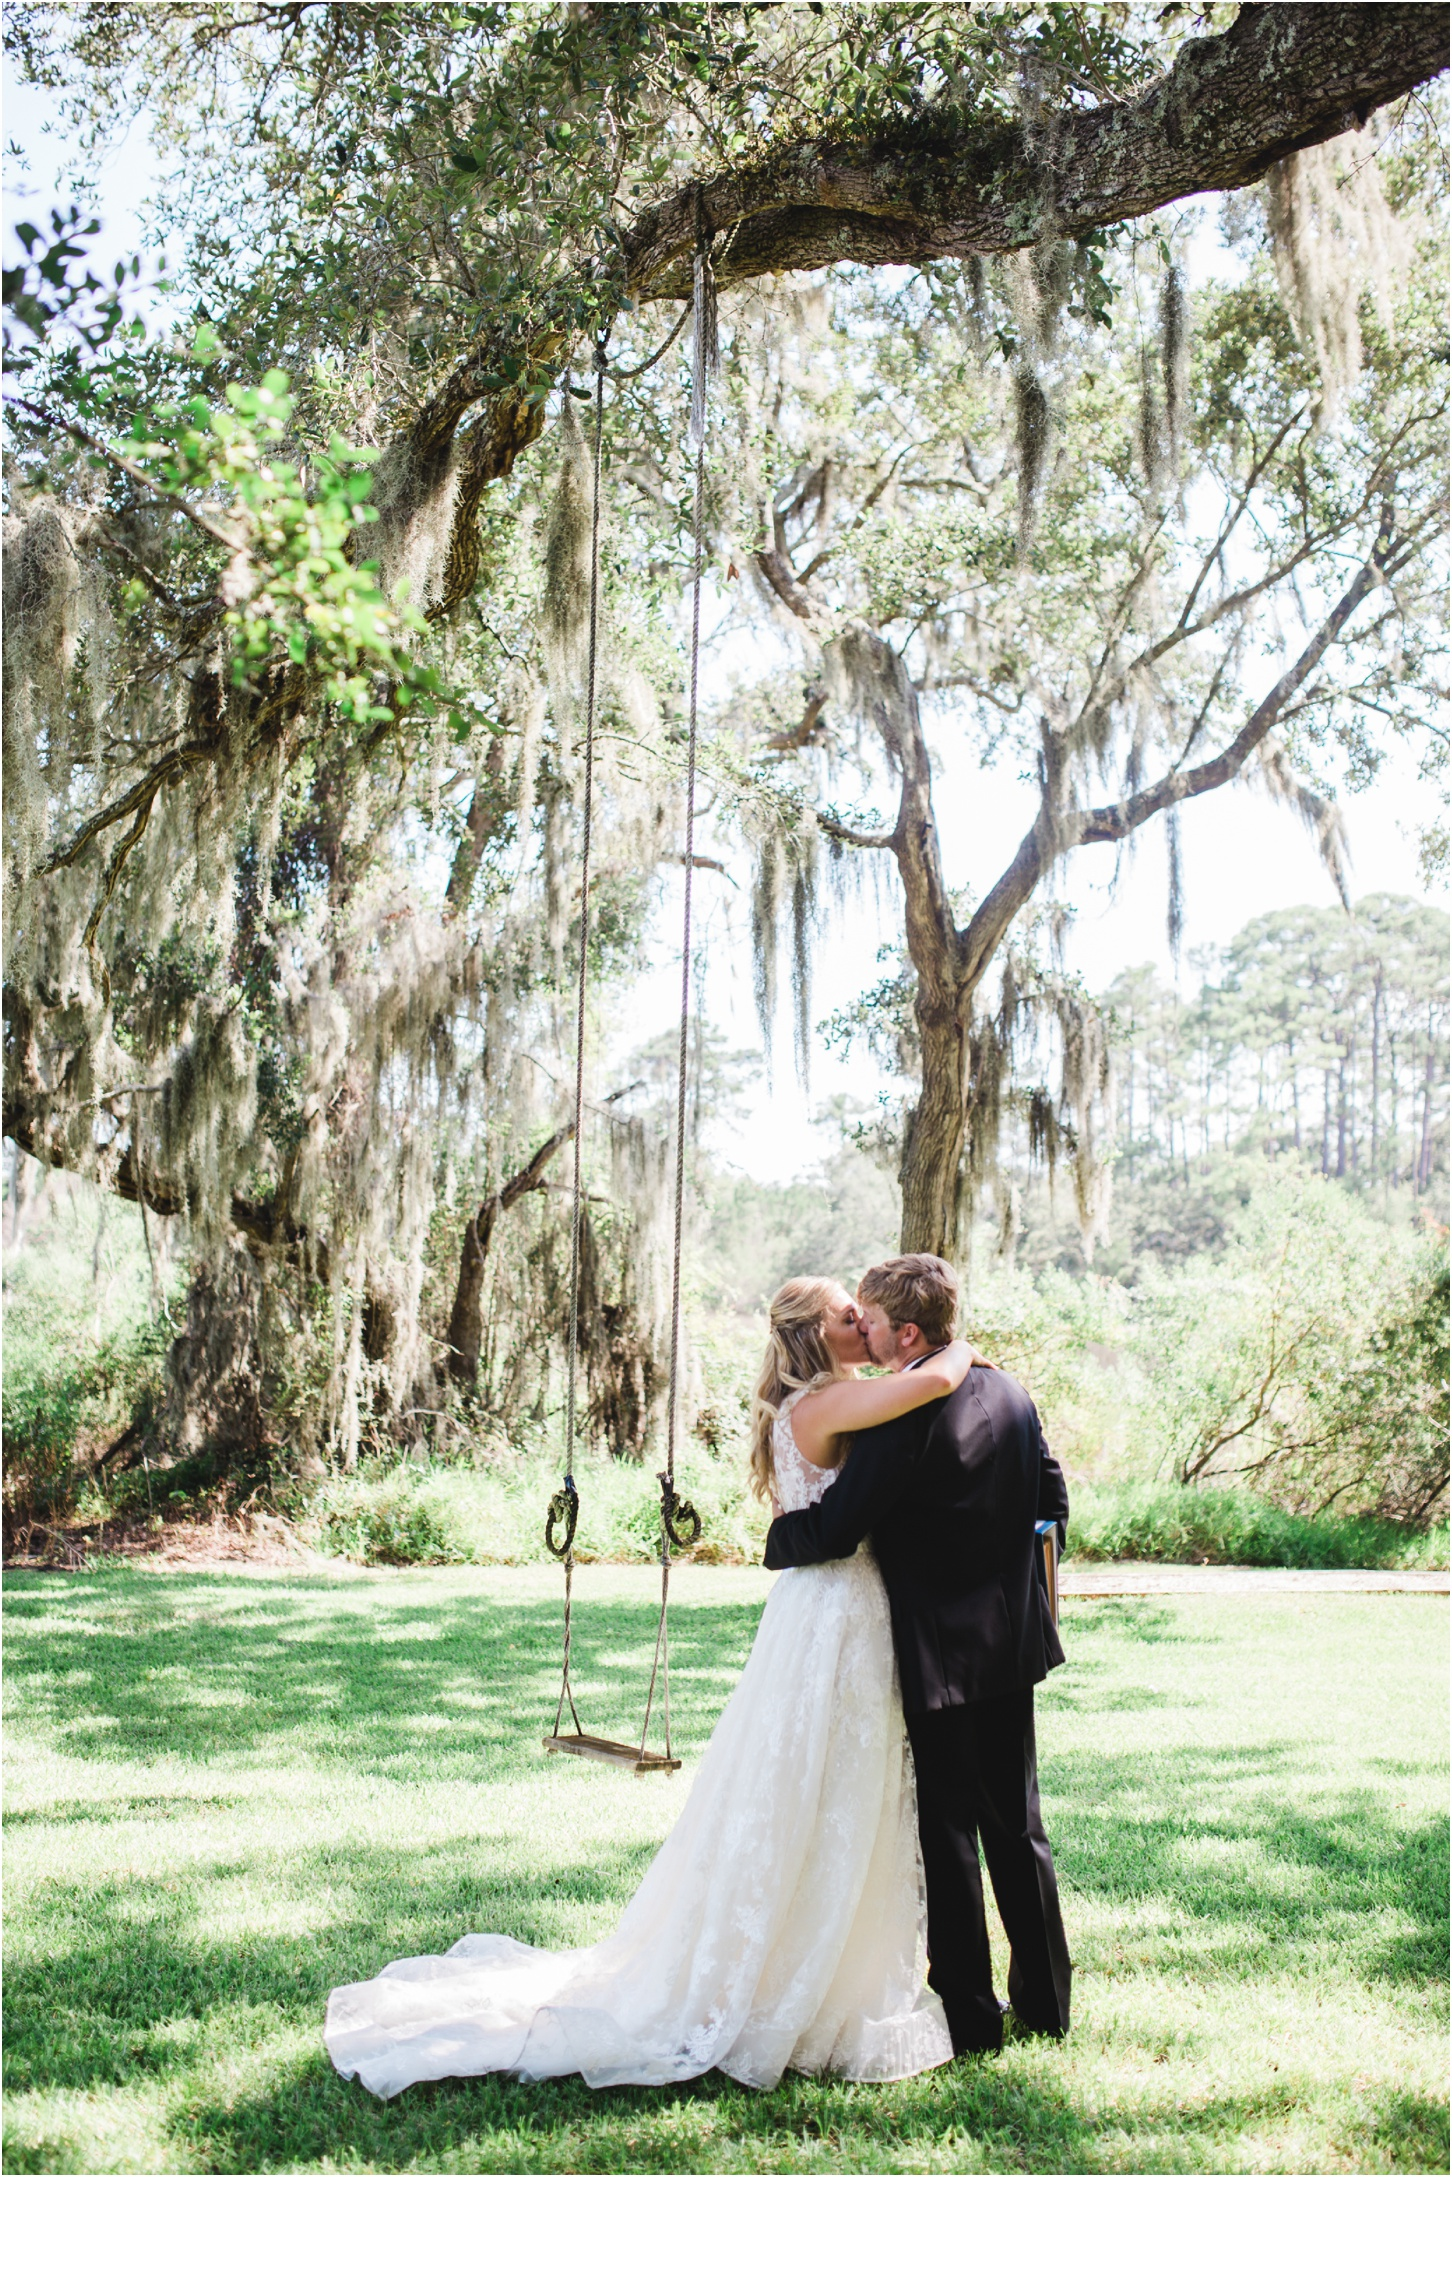 Rainey_Gregg_Photography_St._Simons_Island_Georgia_California_Wedding_Portrait_Photography_0043.jpg